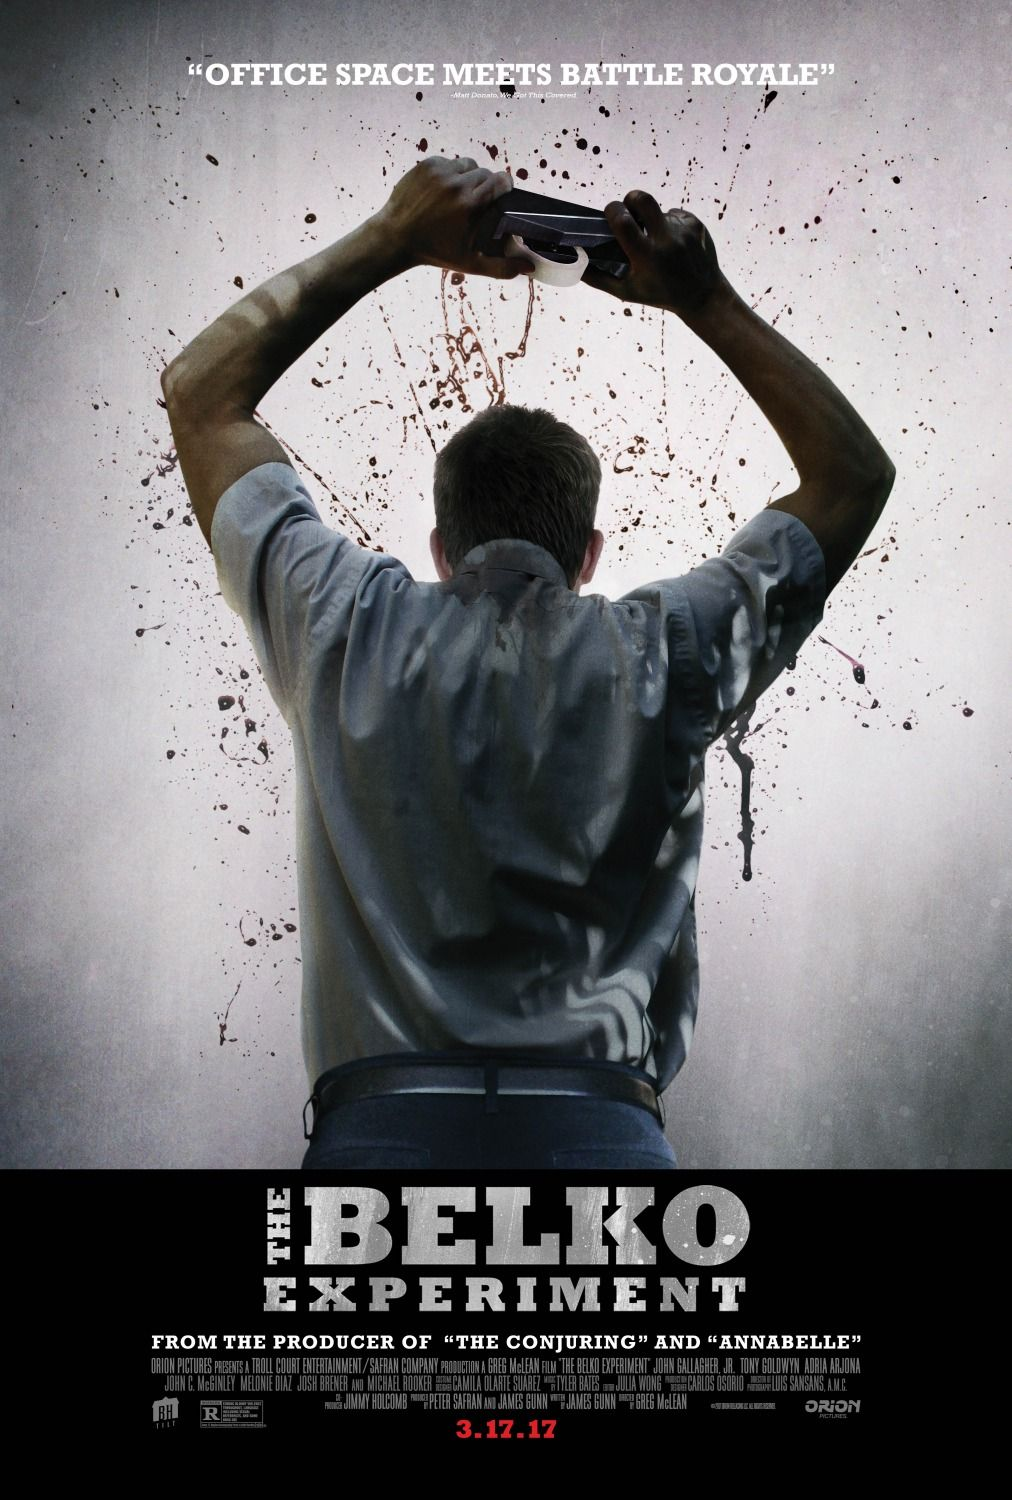 The Belko Experiment Movie Poster 1 Full movies online